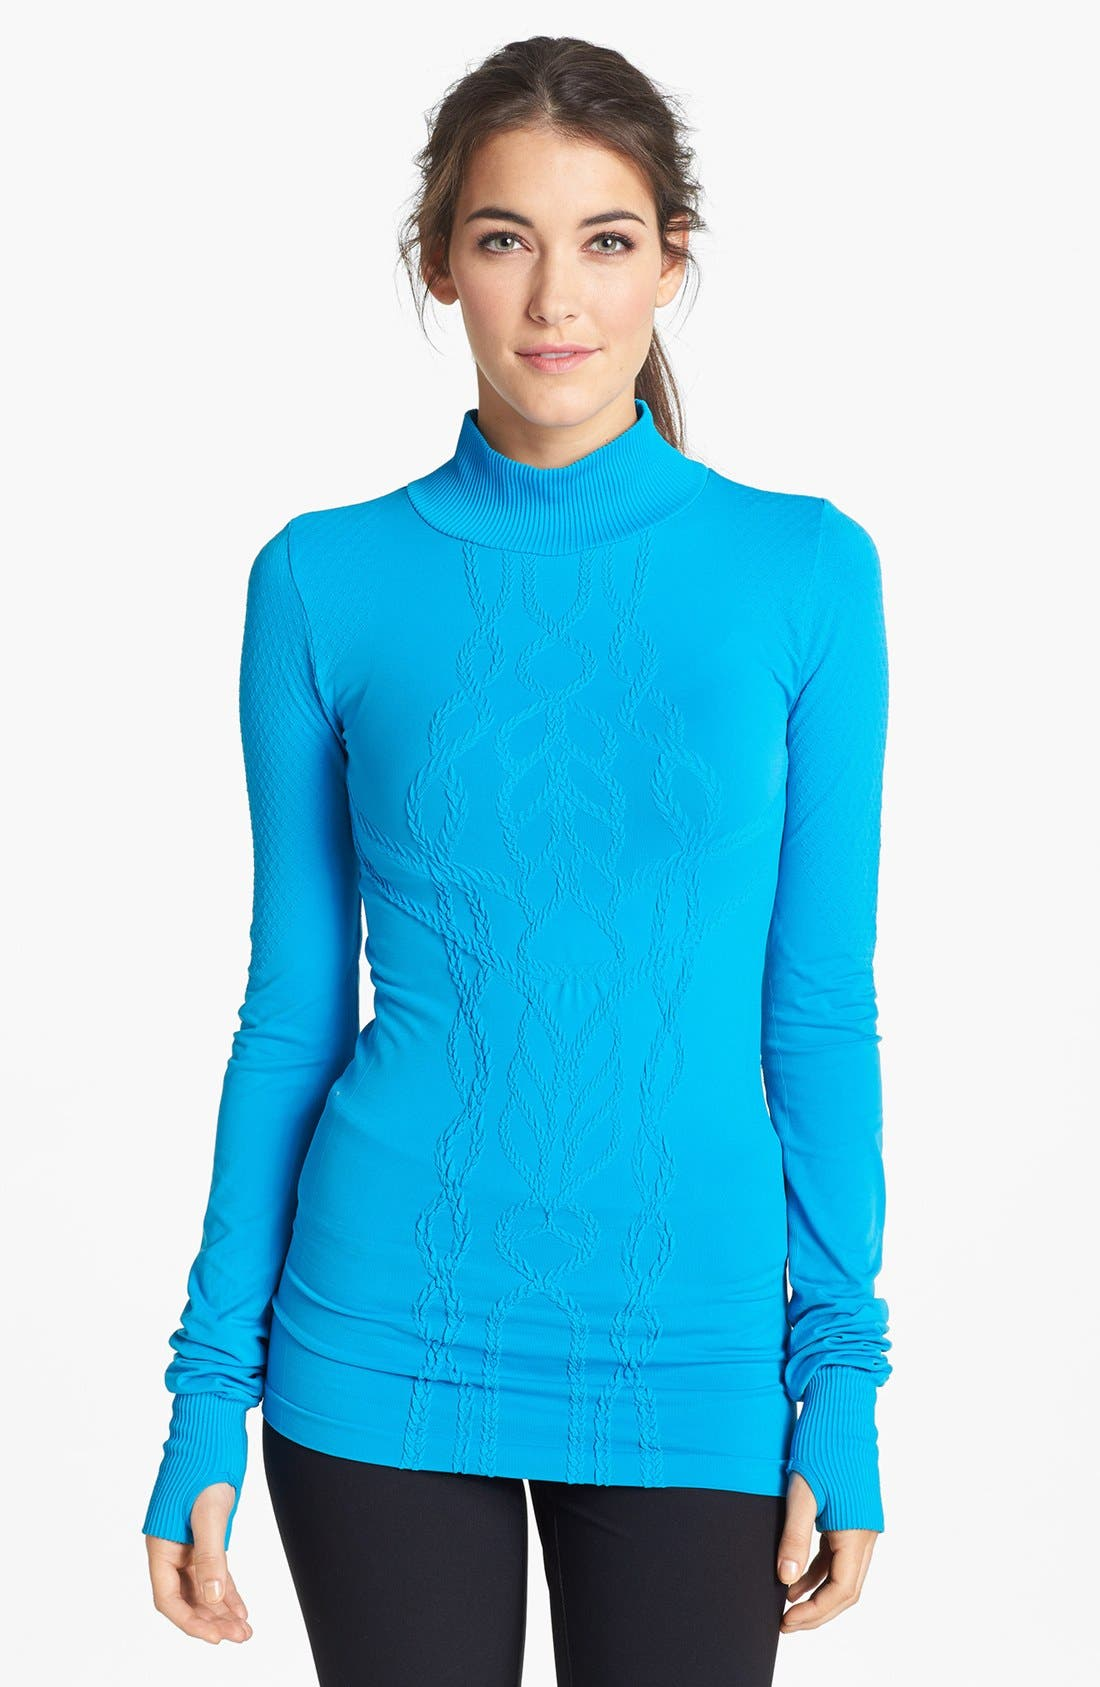 Main Image - Zella Seamless Cable Training Top